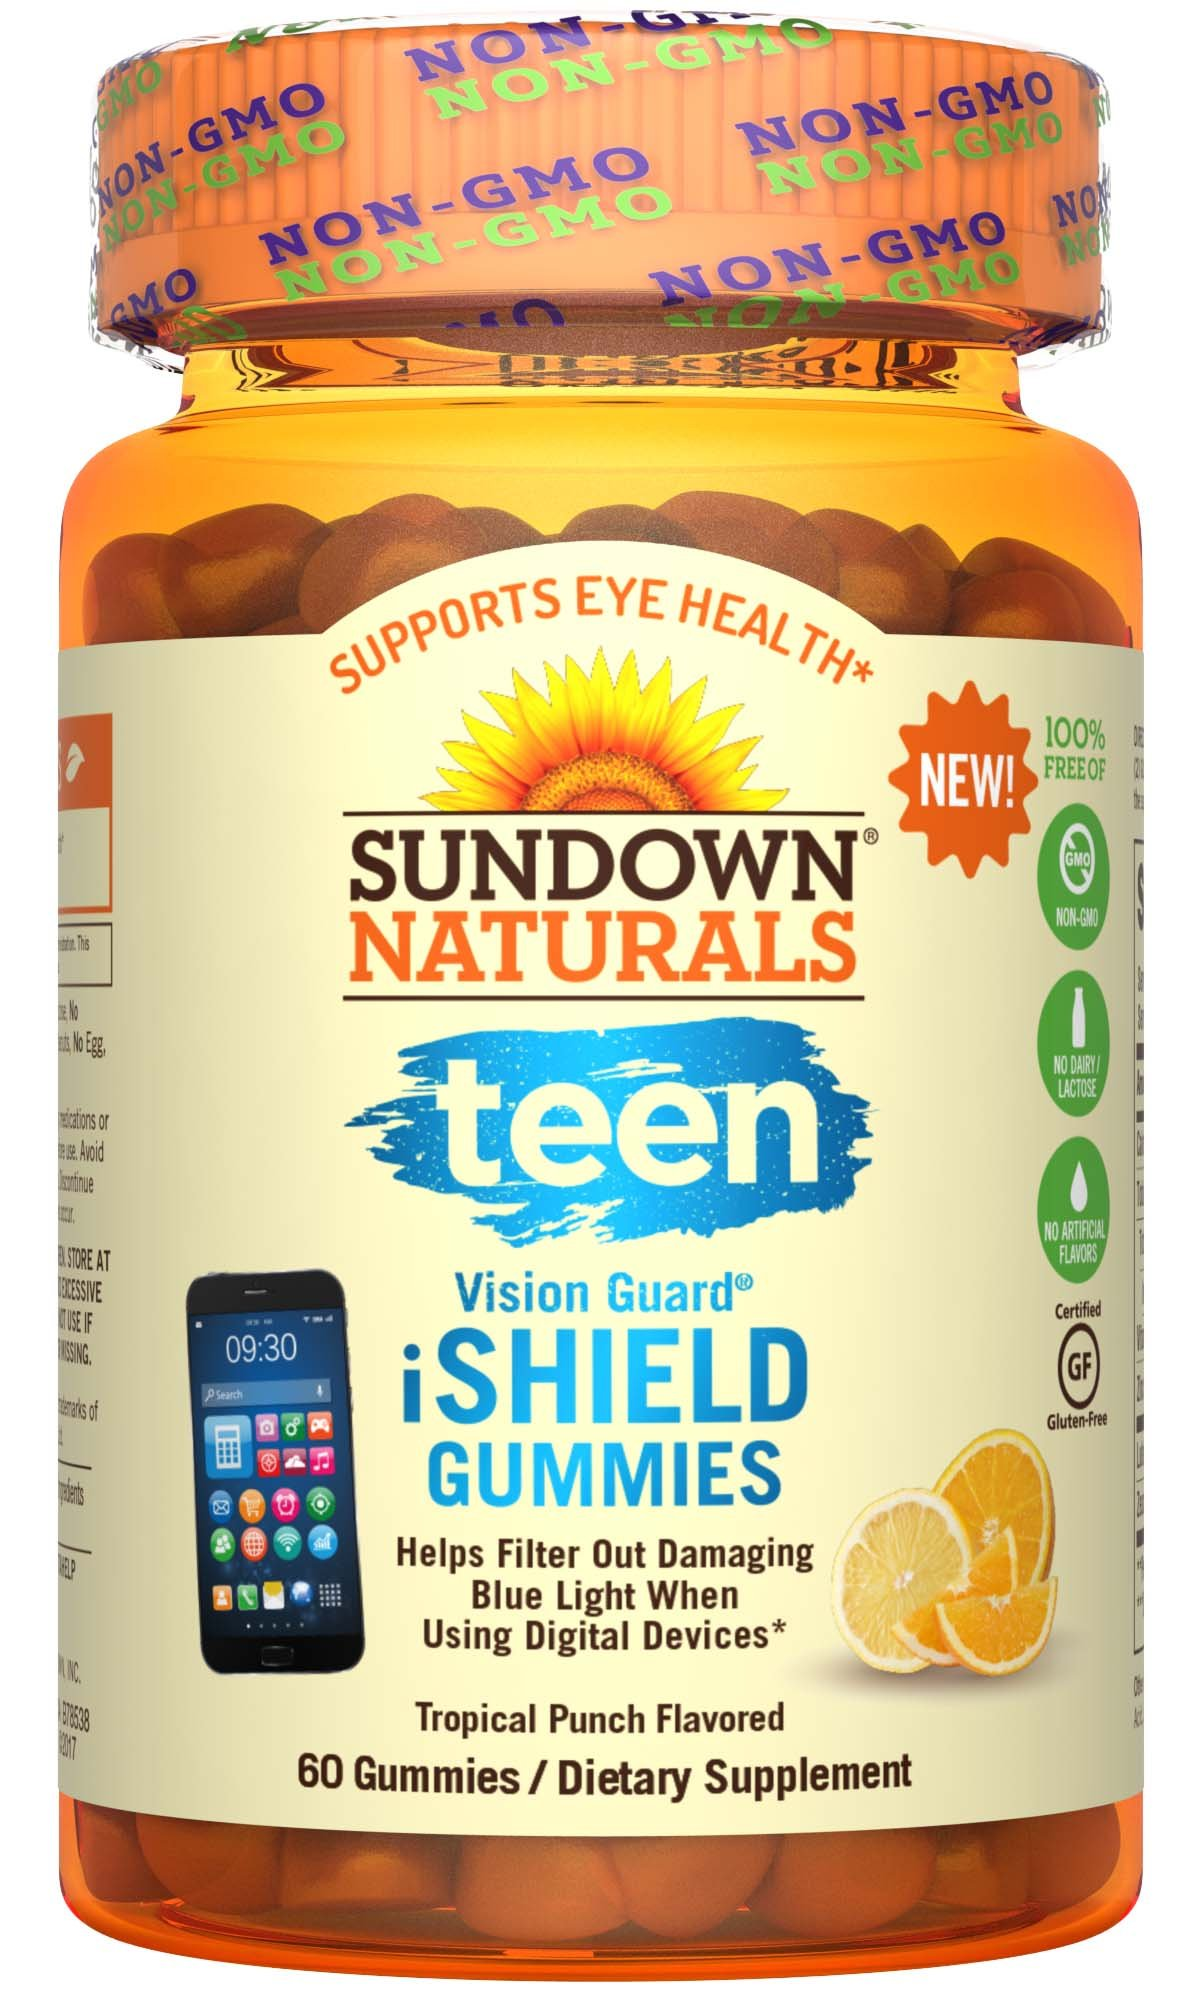 Sundown Naturals Teen Vision Guard I Shield Gummies, 60 Count, Eye Vitamin Gummies, Lutein and Zeaxanthin Supplements with Zinc, Vitamin A, Supports Vision Health, May Help Eyes Filter Out Blue Light